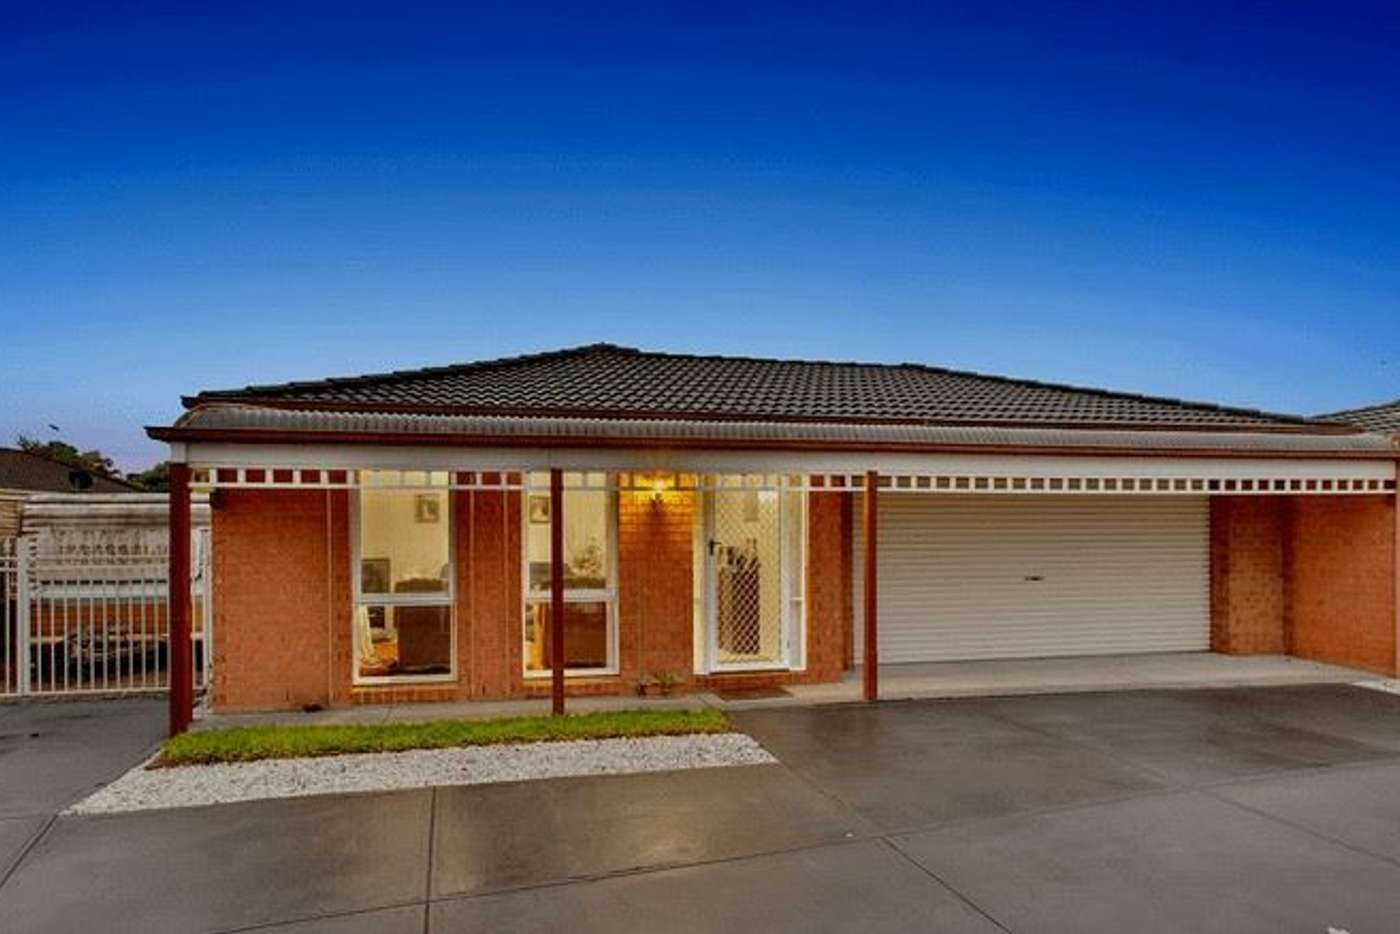 Main view of Homely house listing, 263 Soldiers Road, Beaconsfield VIC 3807